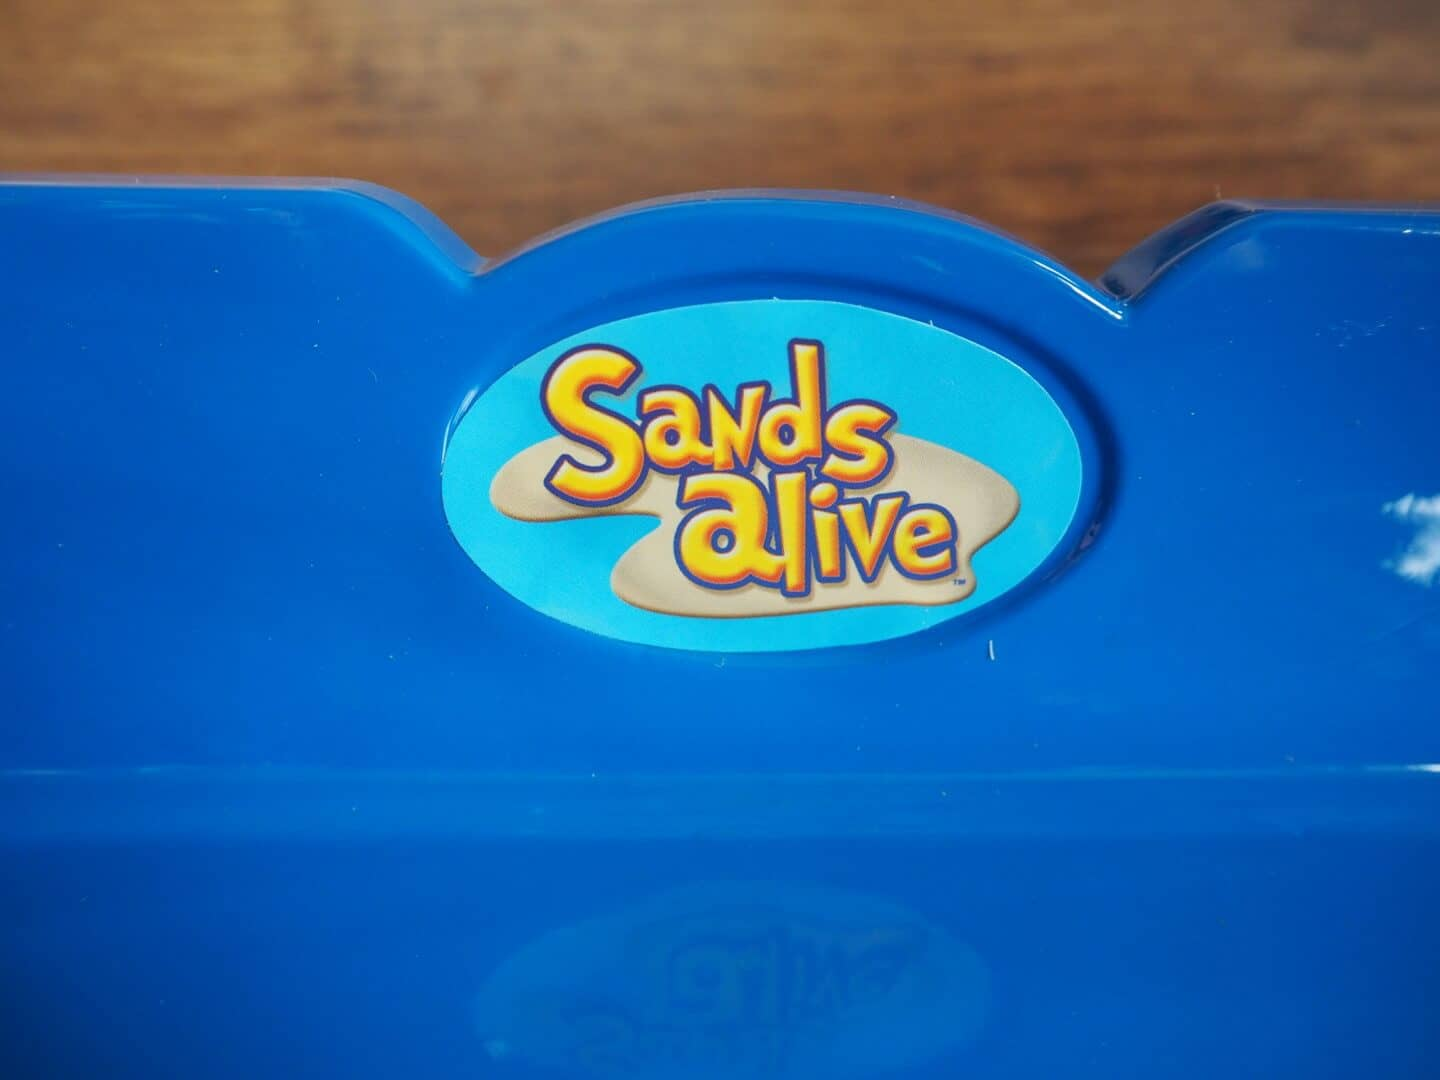 Sands Alive Cake Shop